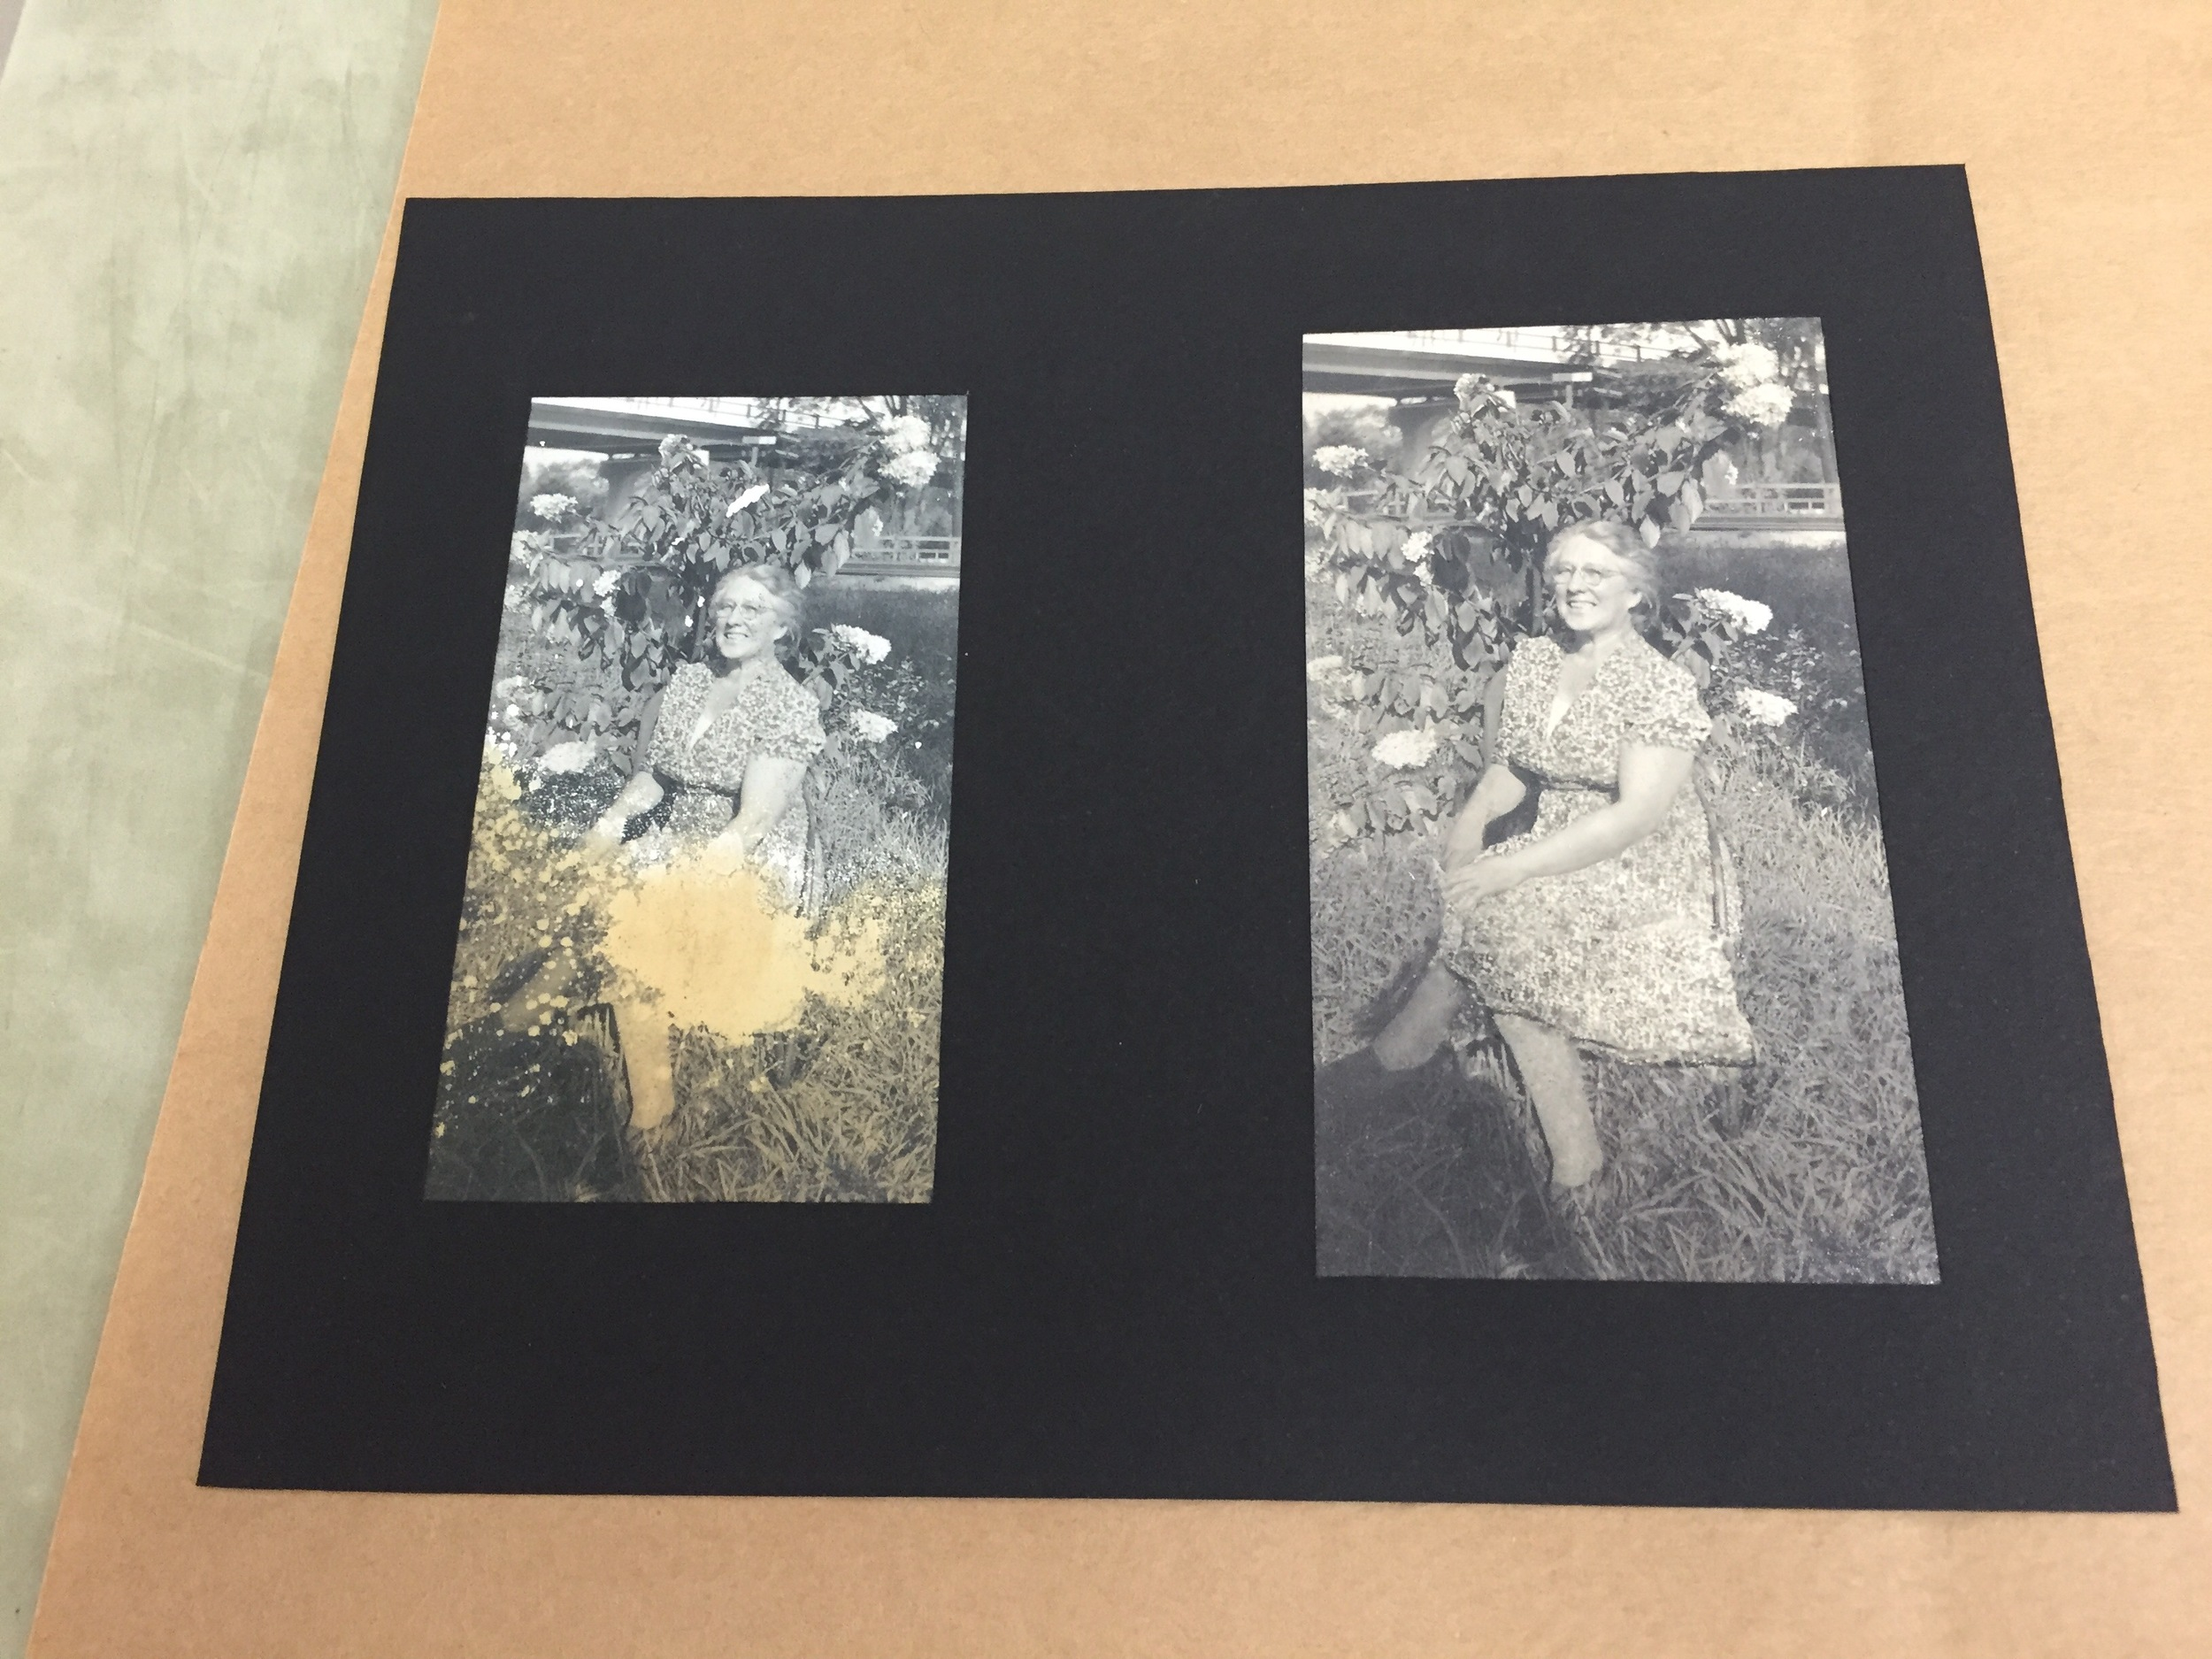 Before (reprint of original) and After